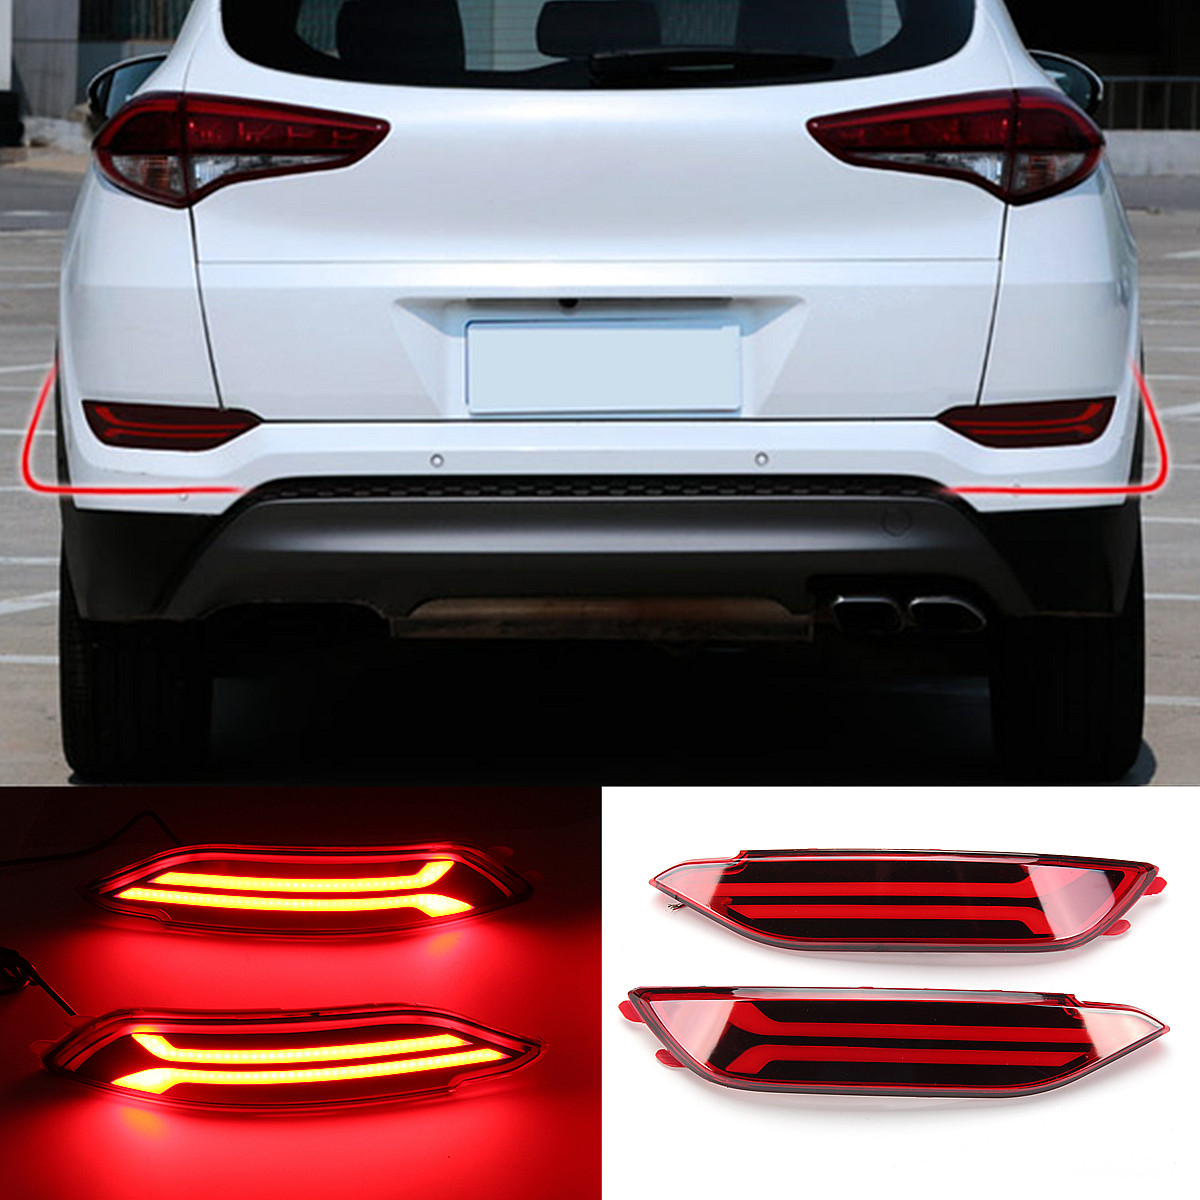 2Pcs for Hyundai Tucson LED Rear Bumper Reflector DRL Fog Driving Brake Lights High Temperature Resistant ABS+LED Lamp Beads2Pcs for Hyundai Tucson LED Rear Bumper Reflector DRL Fog Driving Brake Lights High Temperature Resistant ABS+LED Lamp Beads